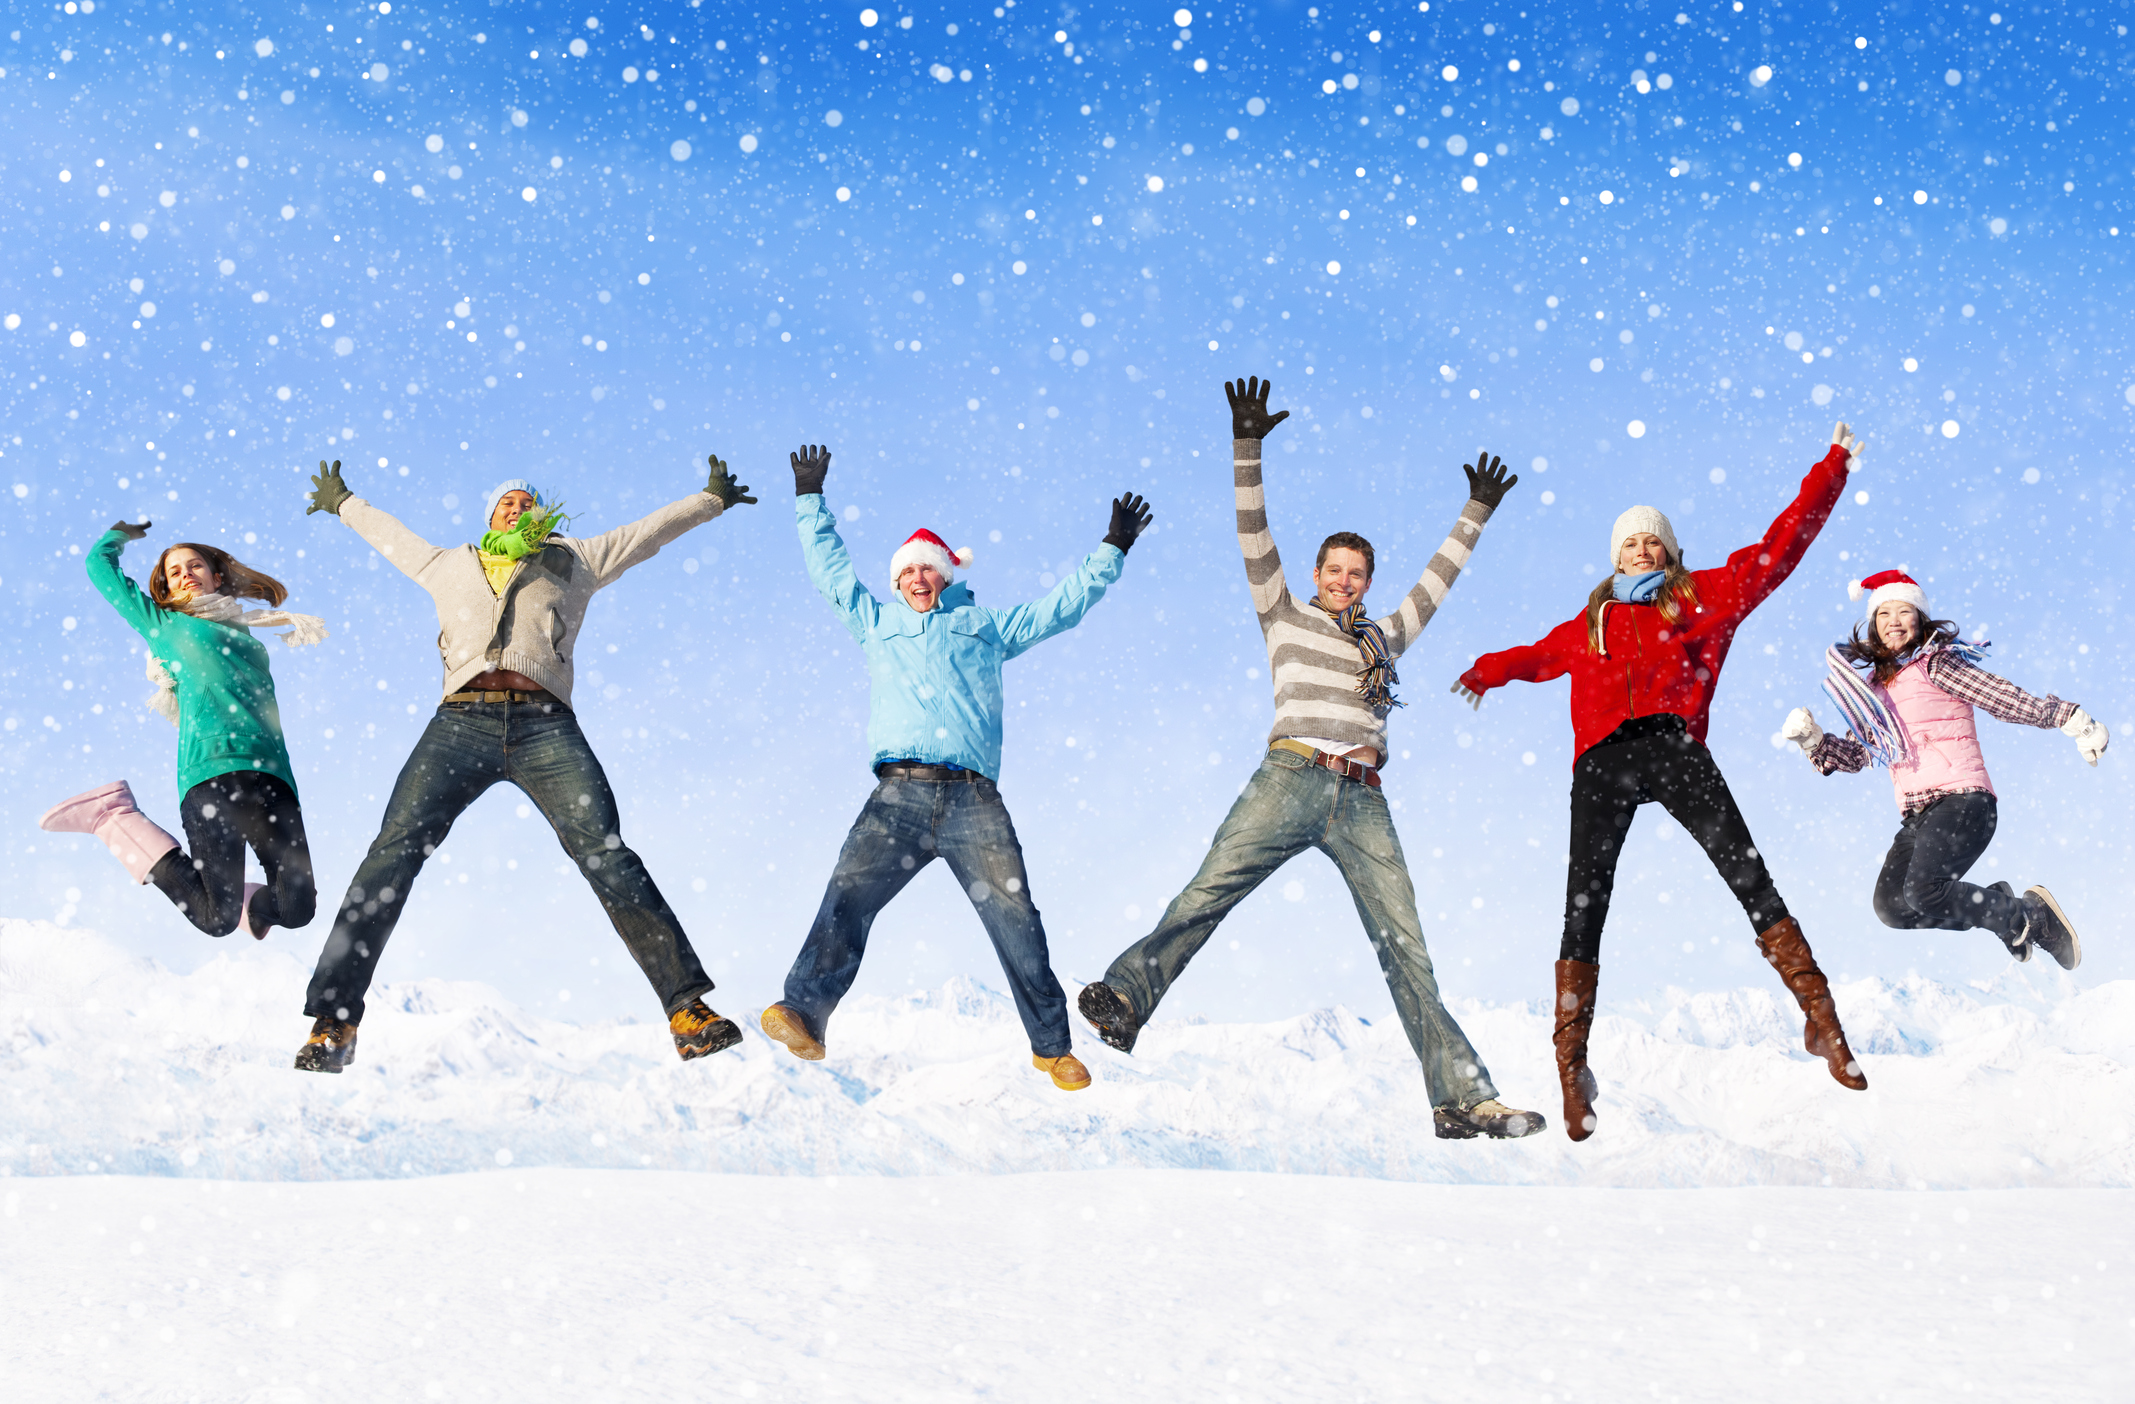 Casting Crowns Christmas.Jump Into Christmas With Casting Crowns Life 96 5 Life 96 5